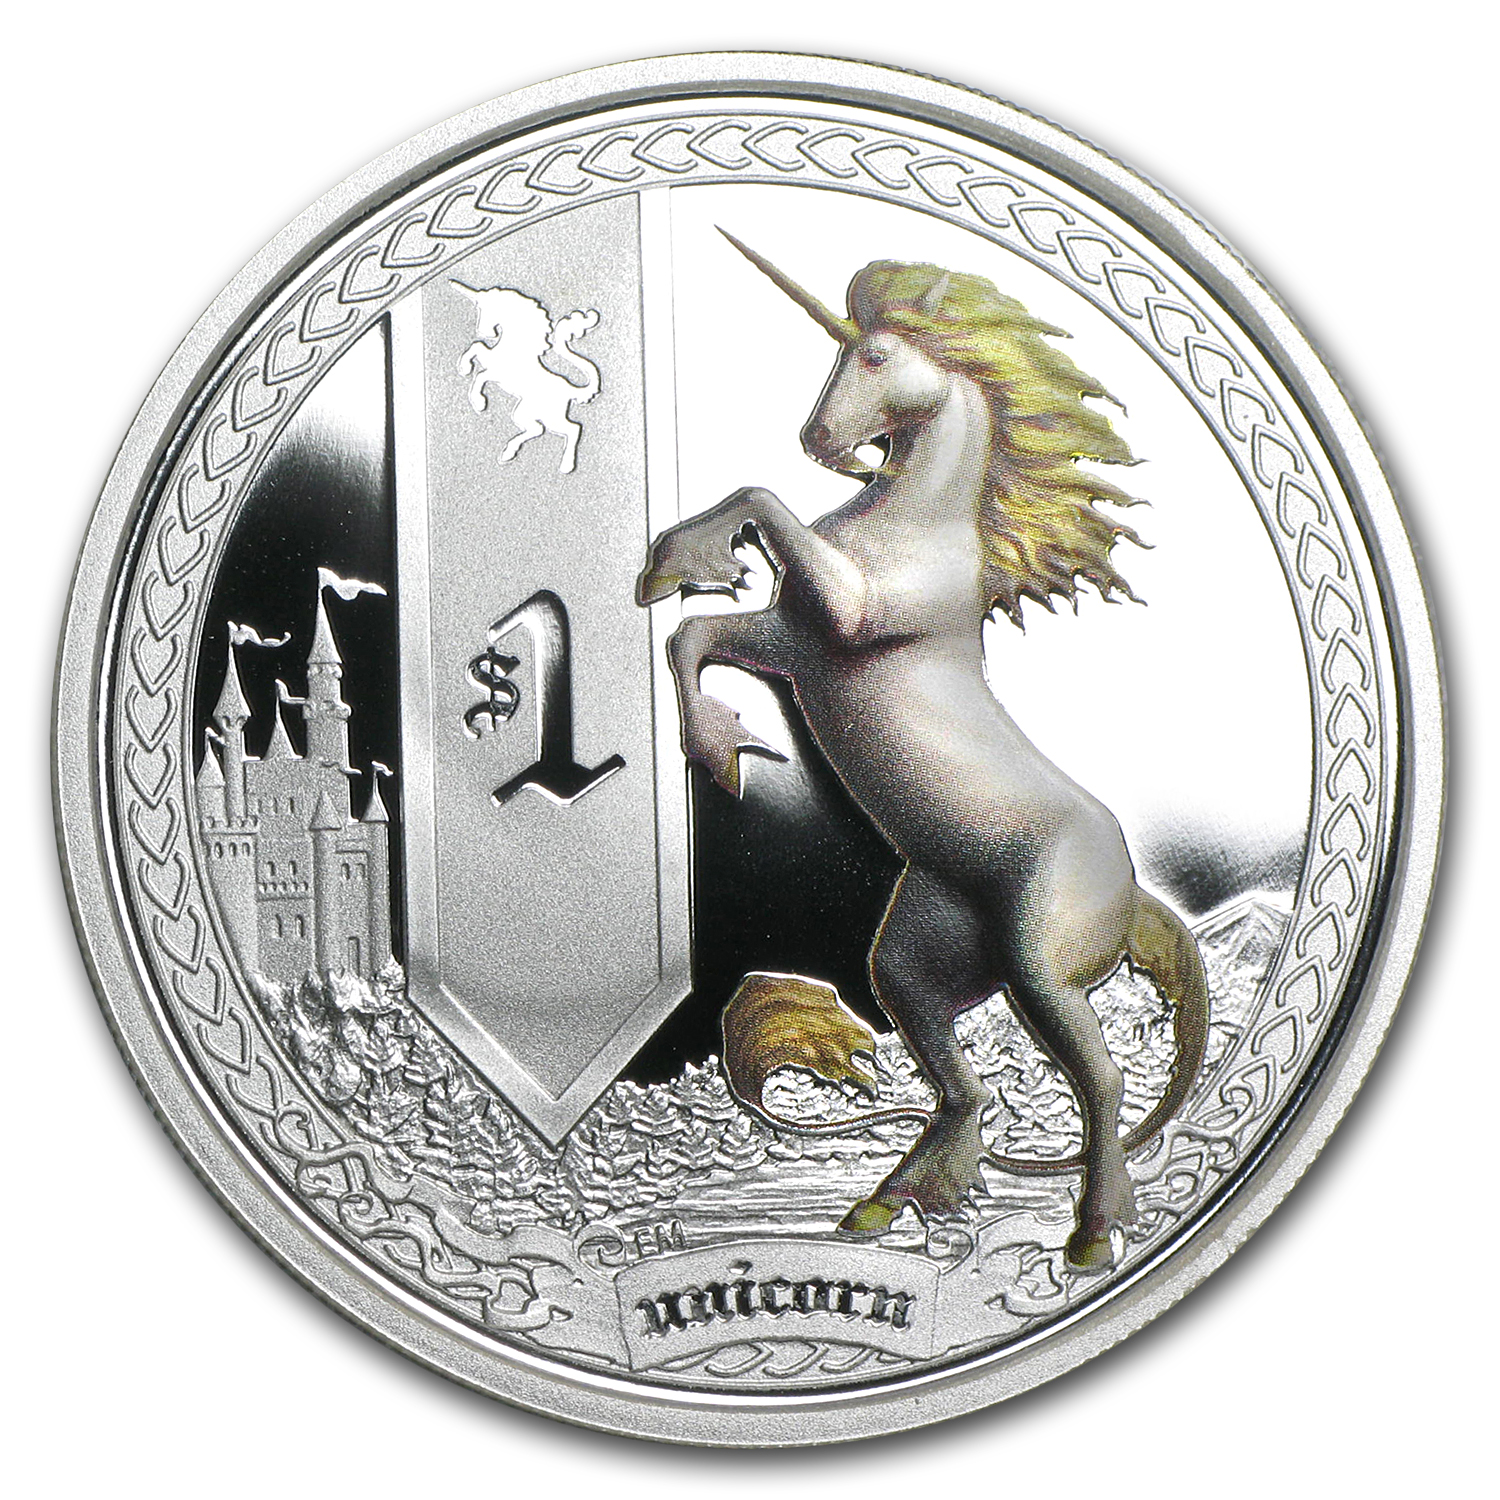 2013 Tuvalu 1 oz Silver Mythical Creatures Unicorn Proof